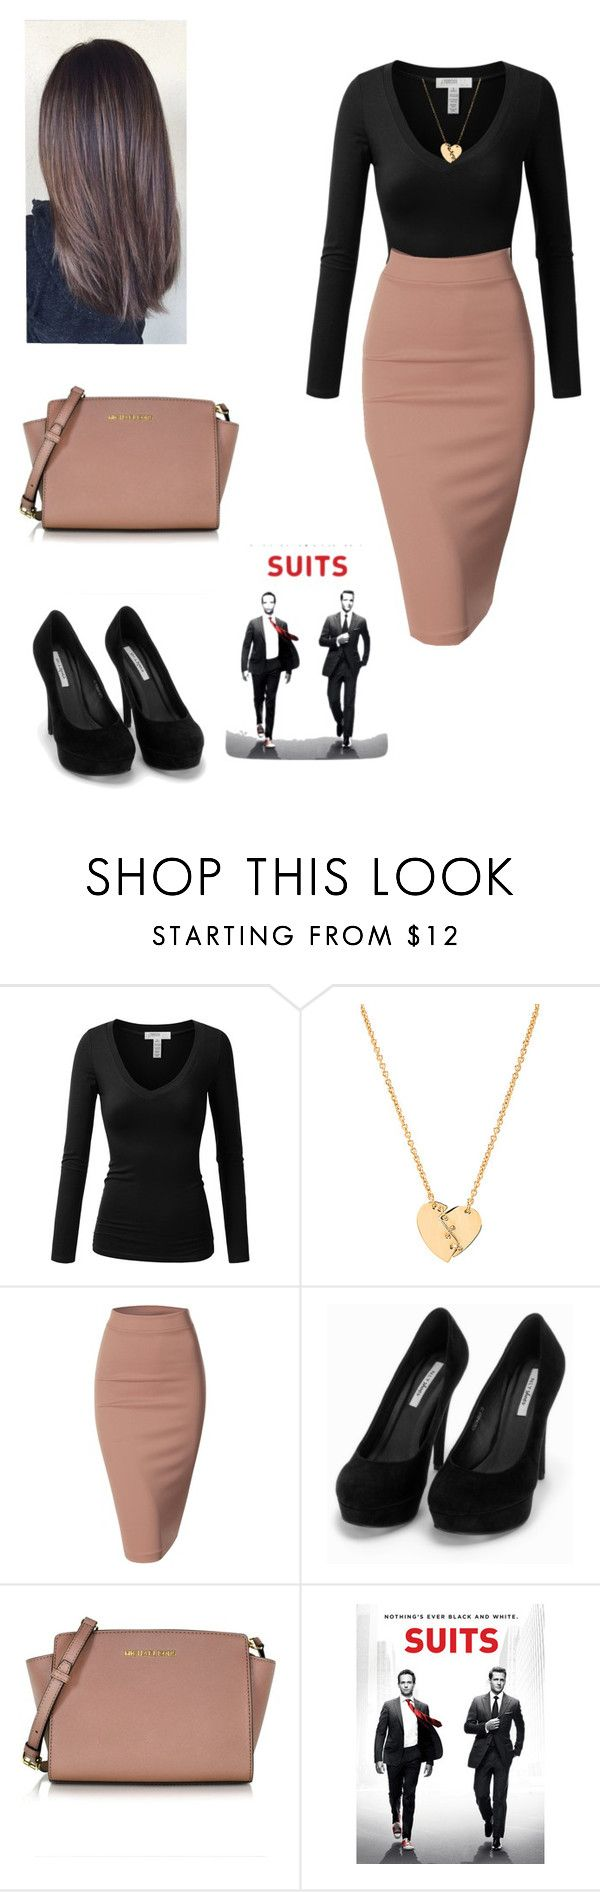 """""""Rachel Zane"""" by crazy-wild-ninja ❤ liked on Polyvore featuring J.TOMSON, Marc by Marc Jacobs, Doublju, Nly Shoes and Michael Kors"""